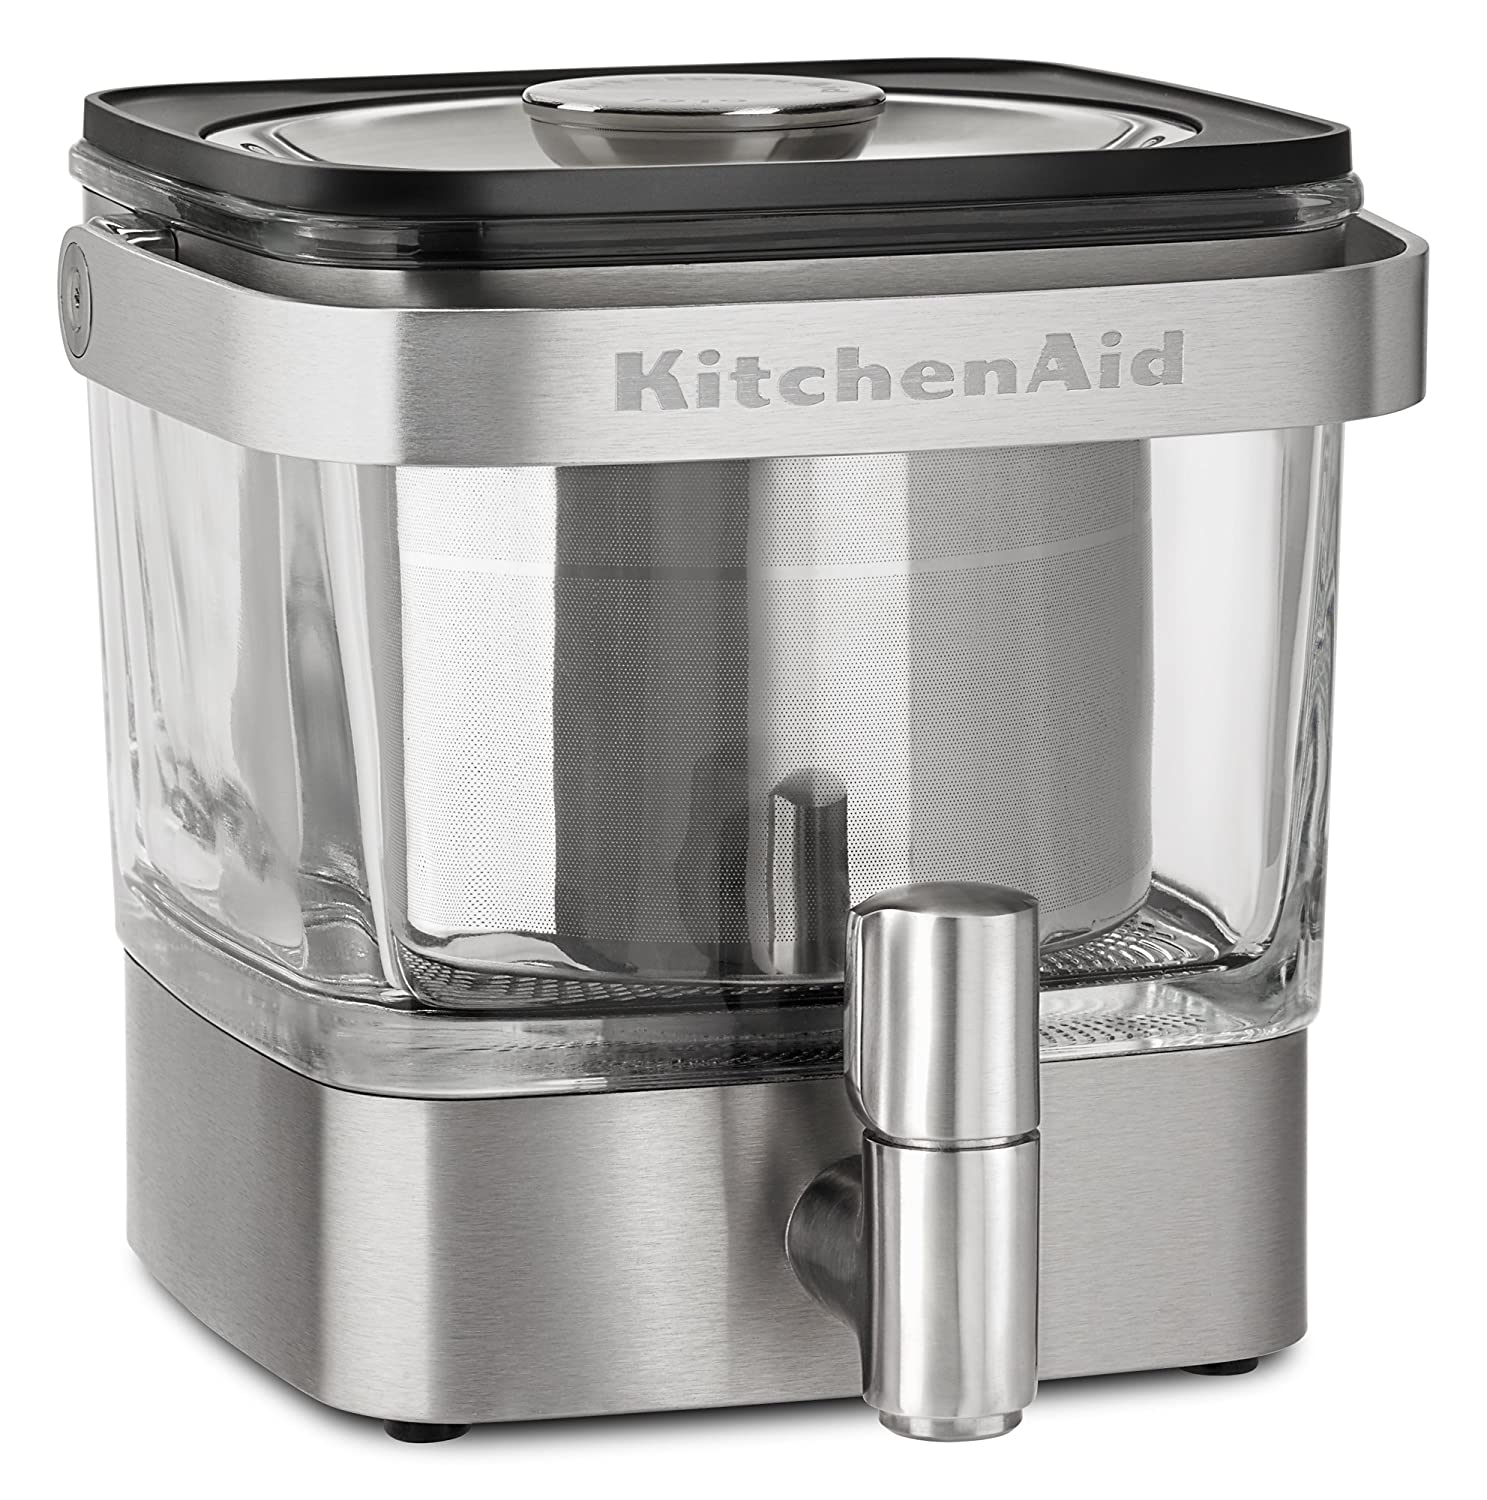 KitchenAid KCM4212SX Cold Brew Coffee Maker Review